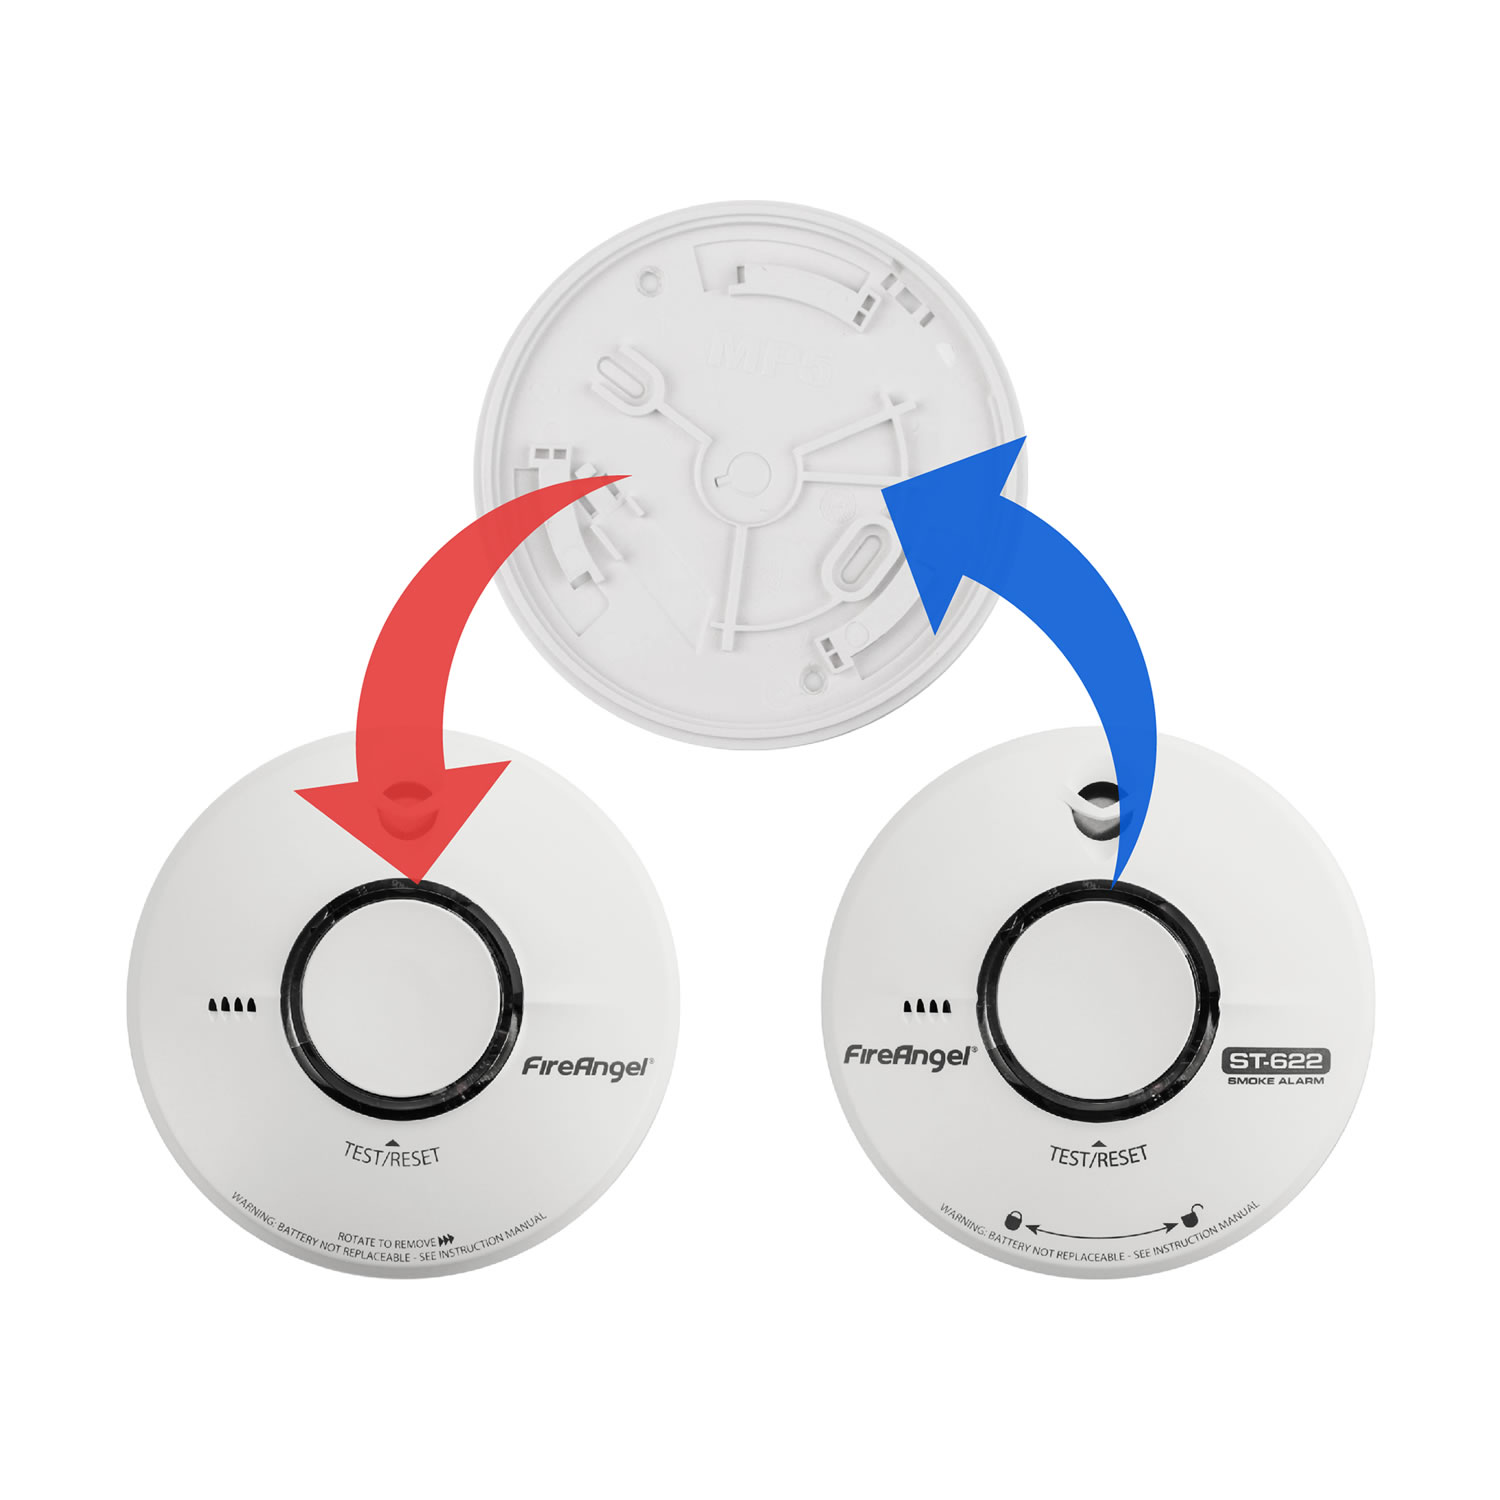 Replacement for FireAngel ST-620 10 Year Smoke Alarm